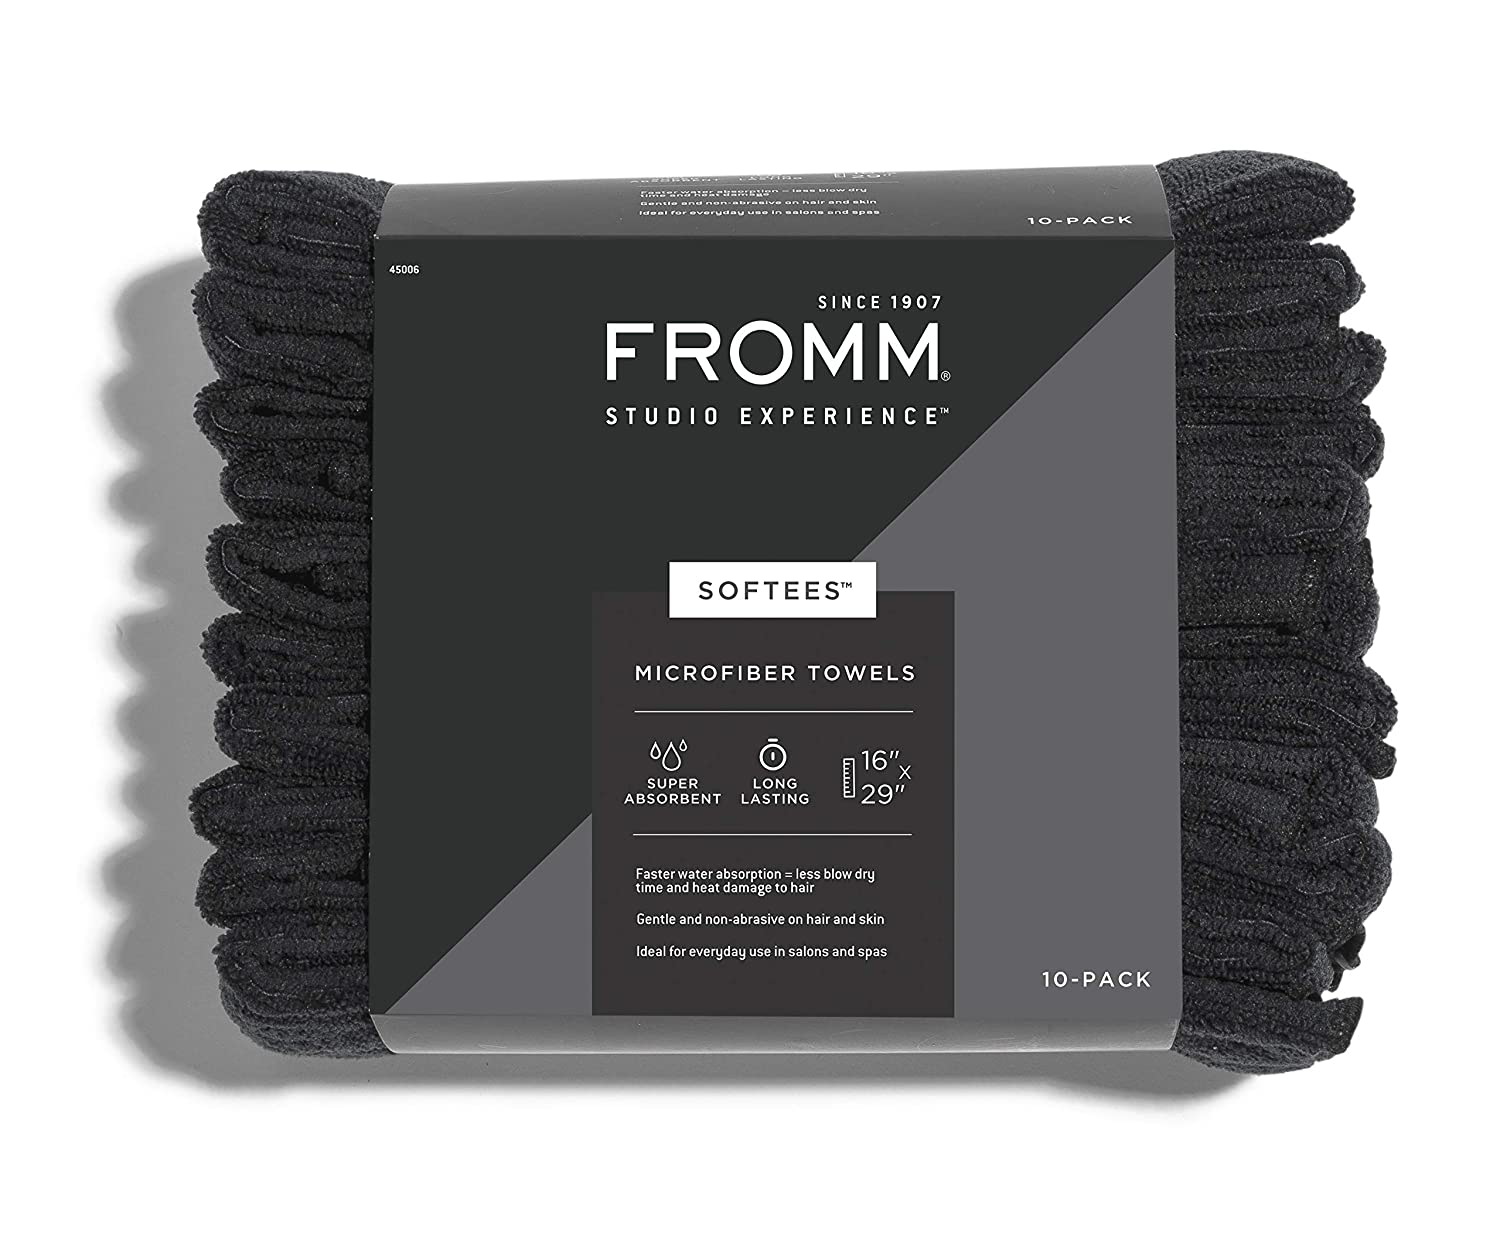 Fromm Softees Microfiber Towels – Dryin Pack Fast Animer and price revision online shop 10